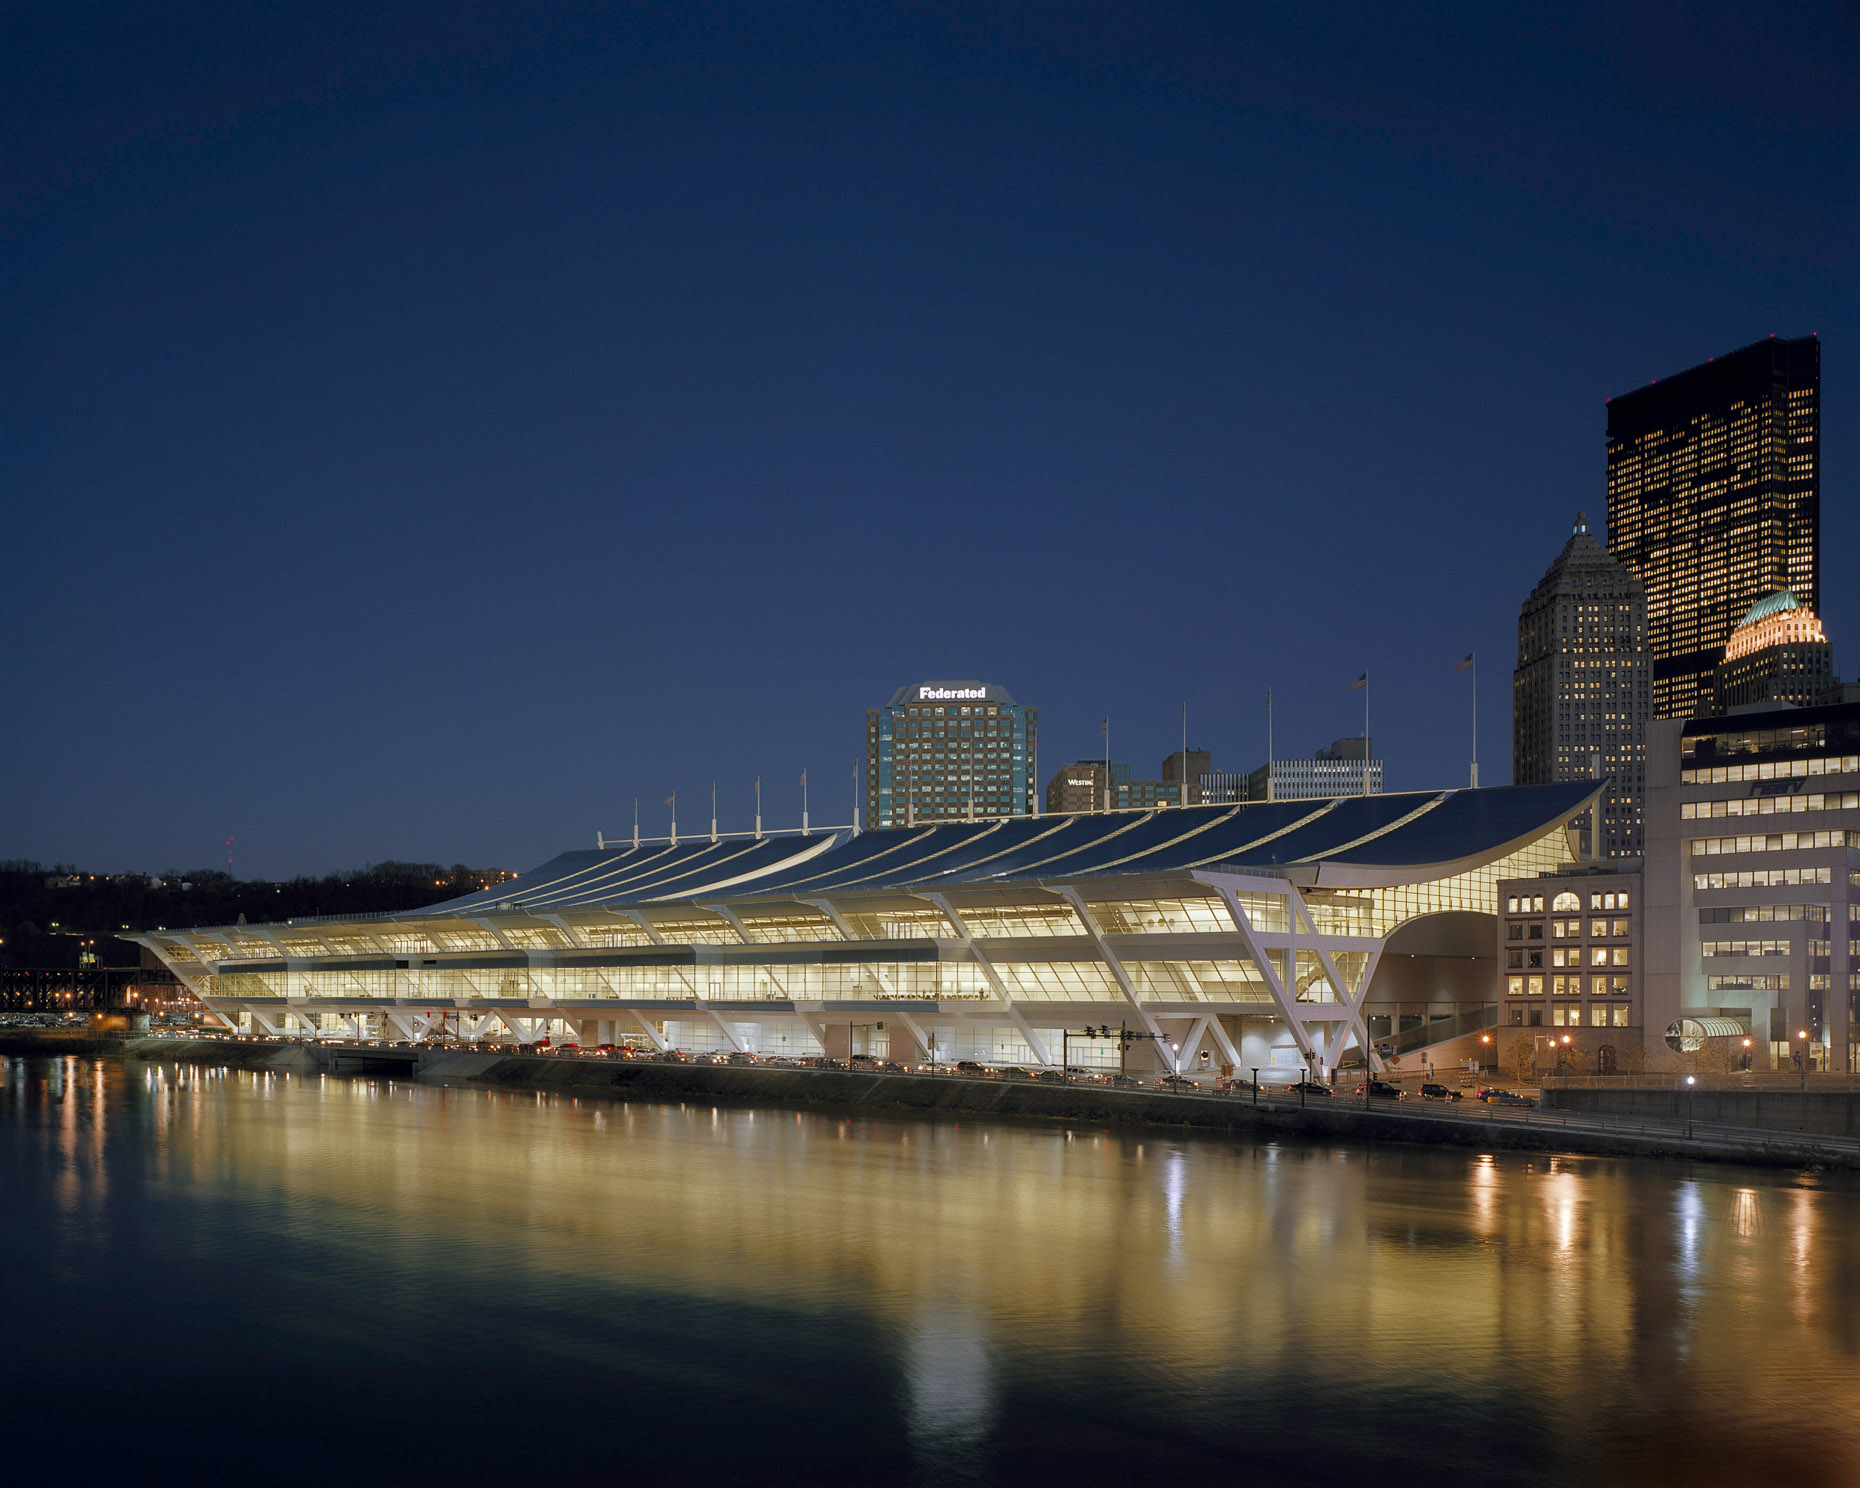 David L Lawrence Convention Center by Rafael Vinoly Architects Photographed by Brad Feinknopf based in Columbus, Ohio